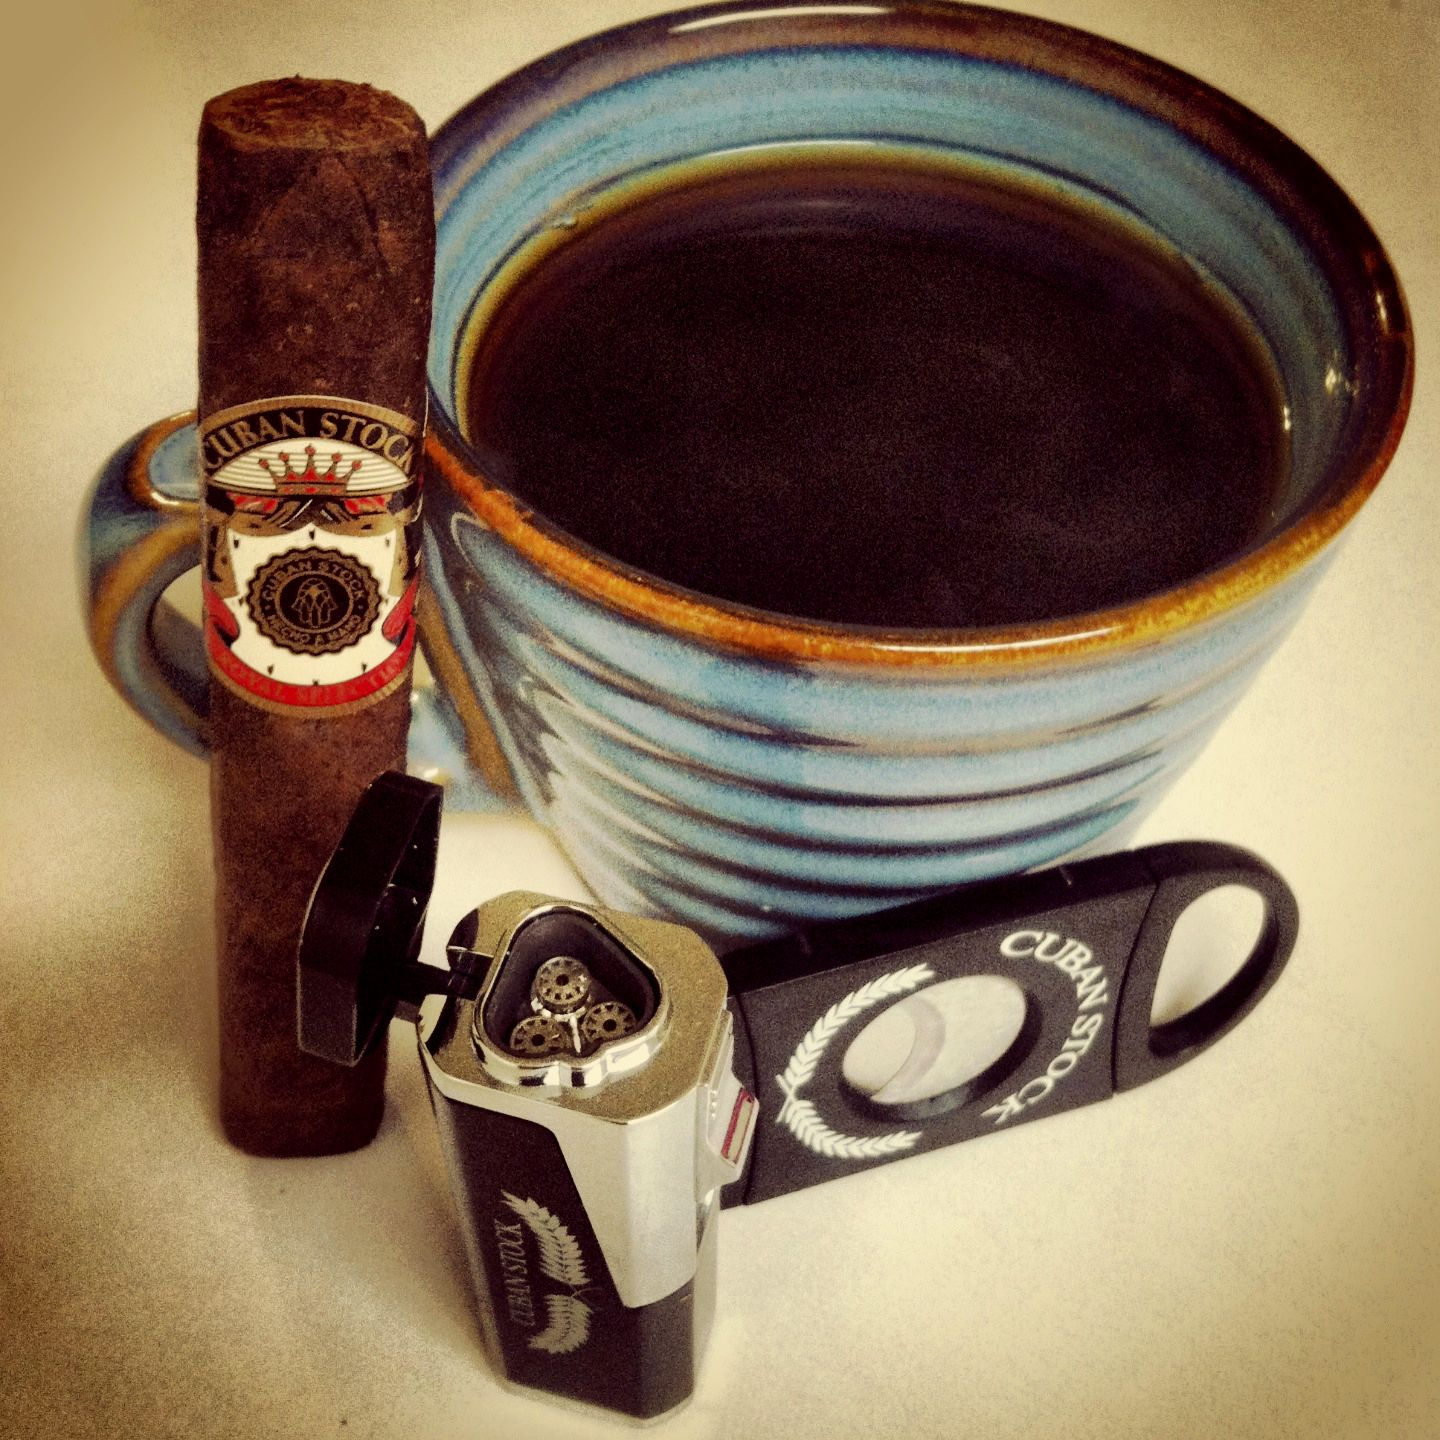 goodmorning CubanStock Royal Selection Robusto & a cup of French